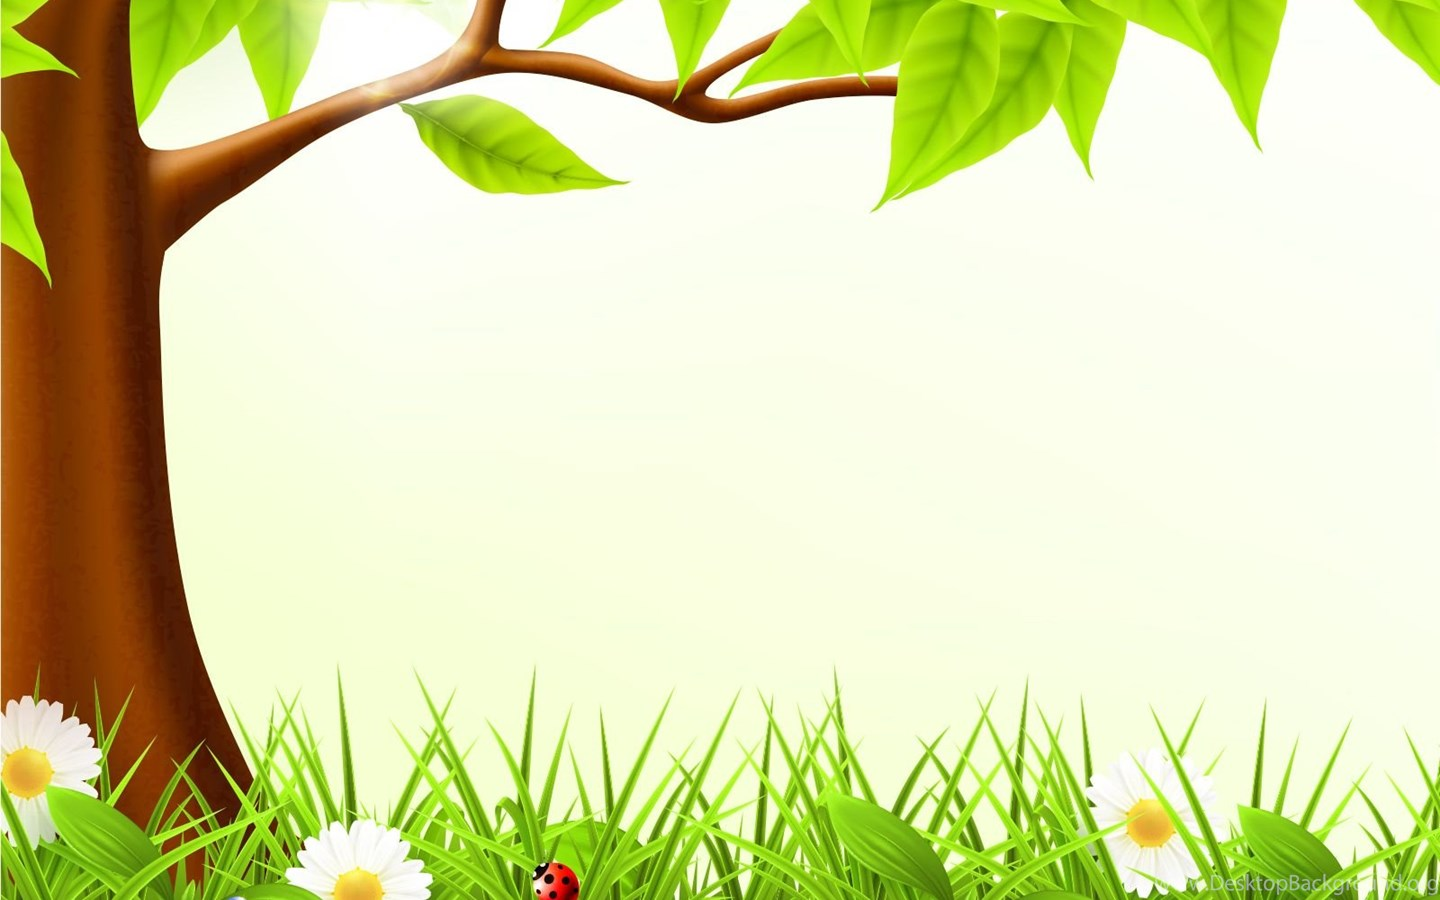 Iphone 5s Animated Wallpaper Cute Forest Spring Backgrounds Design Green Nature